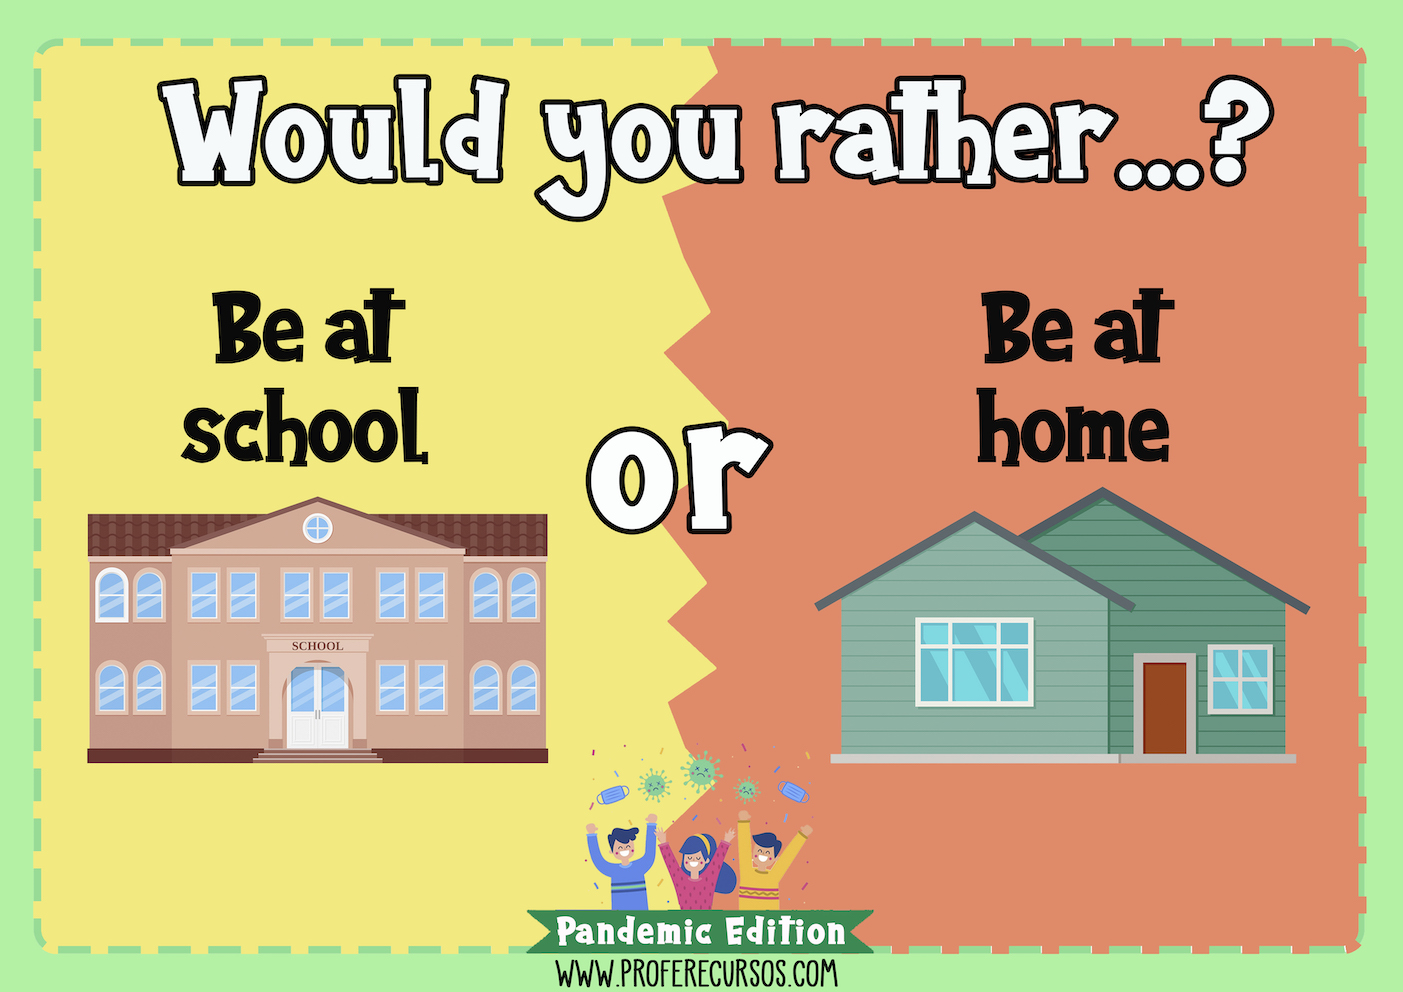 Would you rather online lessons